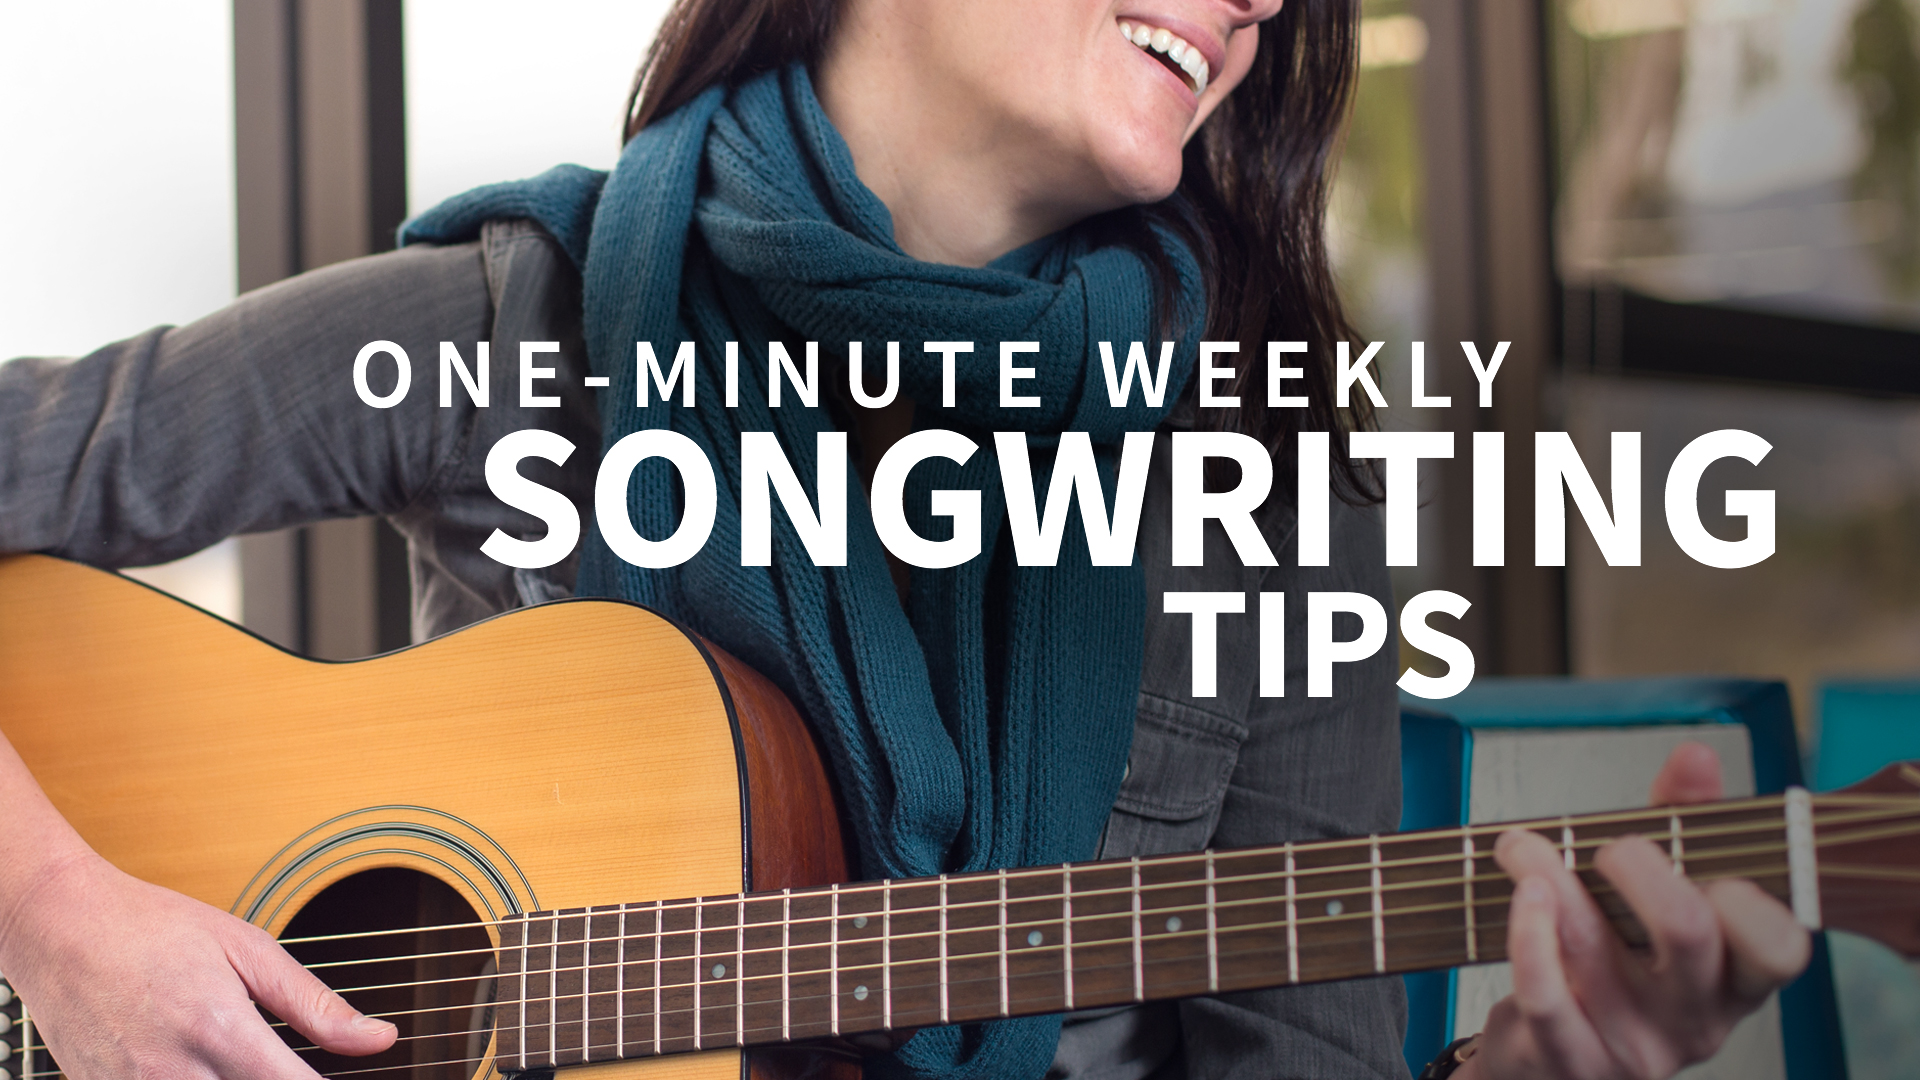 Try using the first line as the last line, too: One-Minute Weekly Songwriting Tips